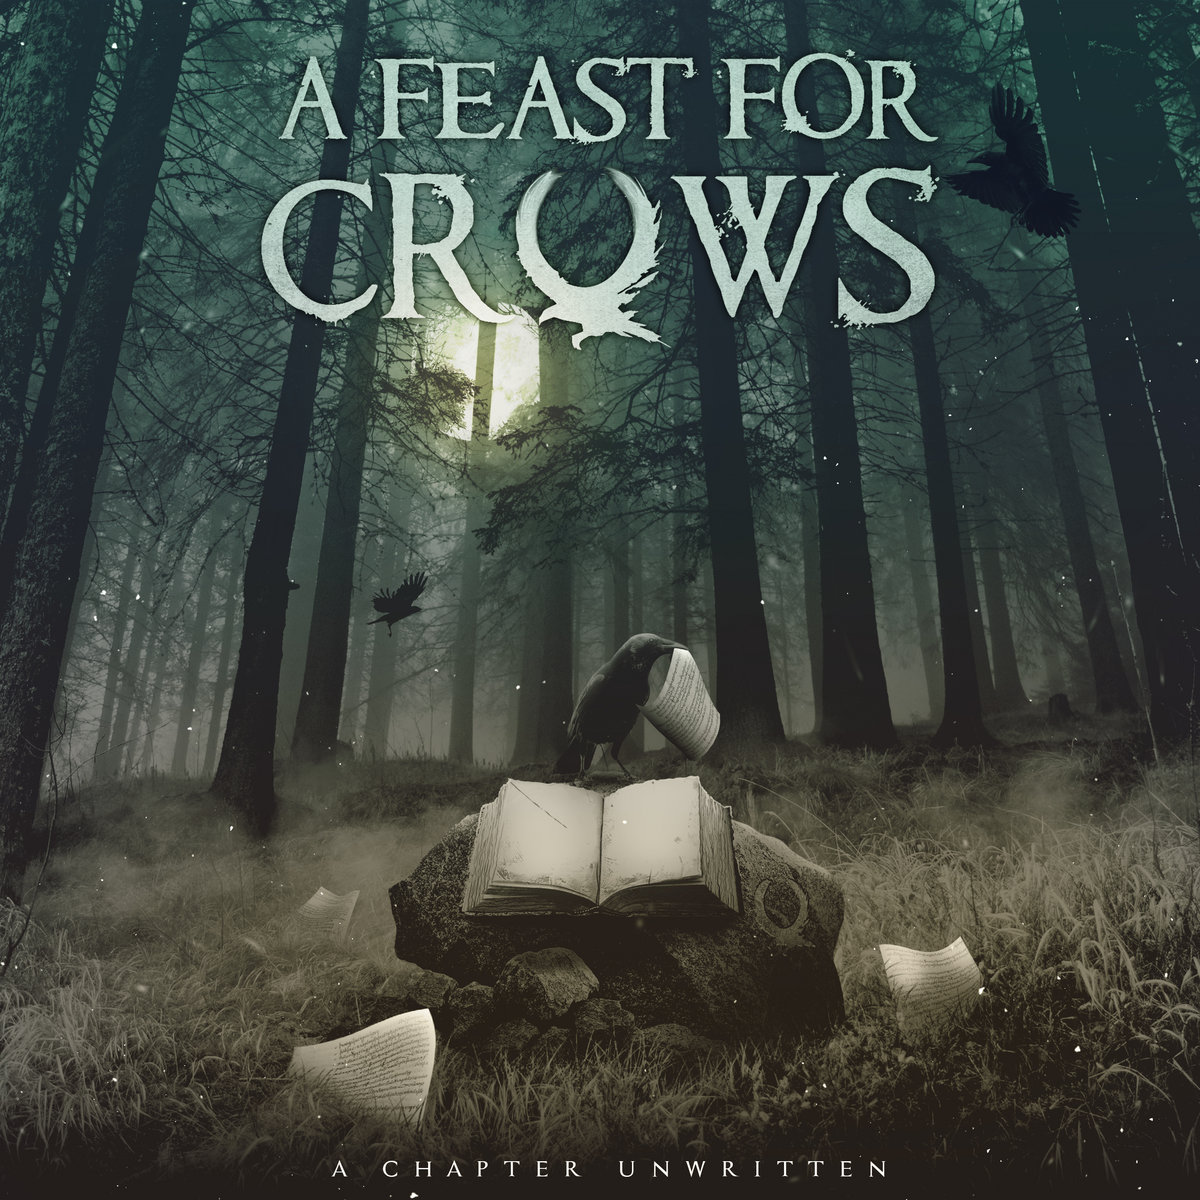 A Feast For Crows - A Chapter Unwritten (2017)